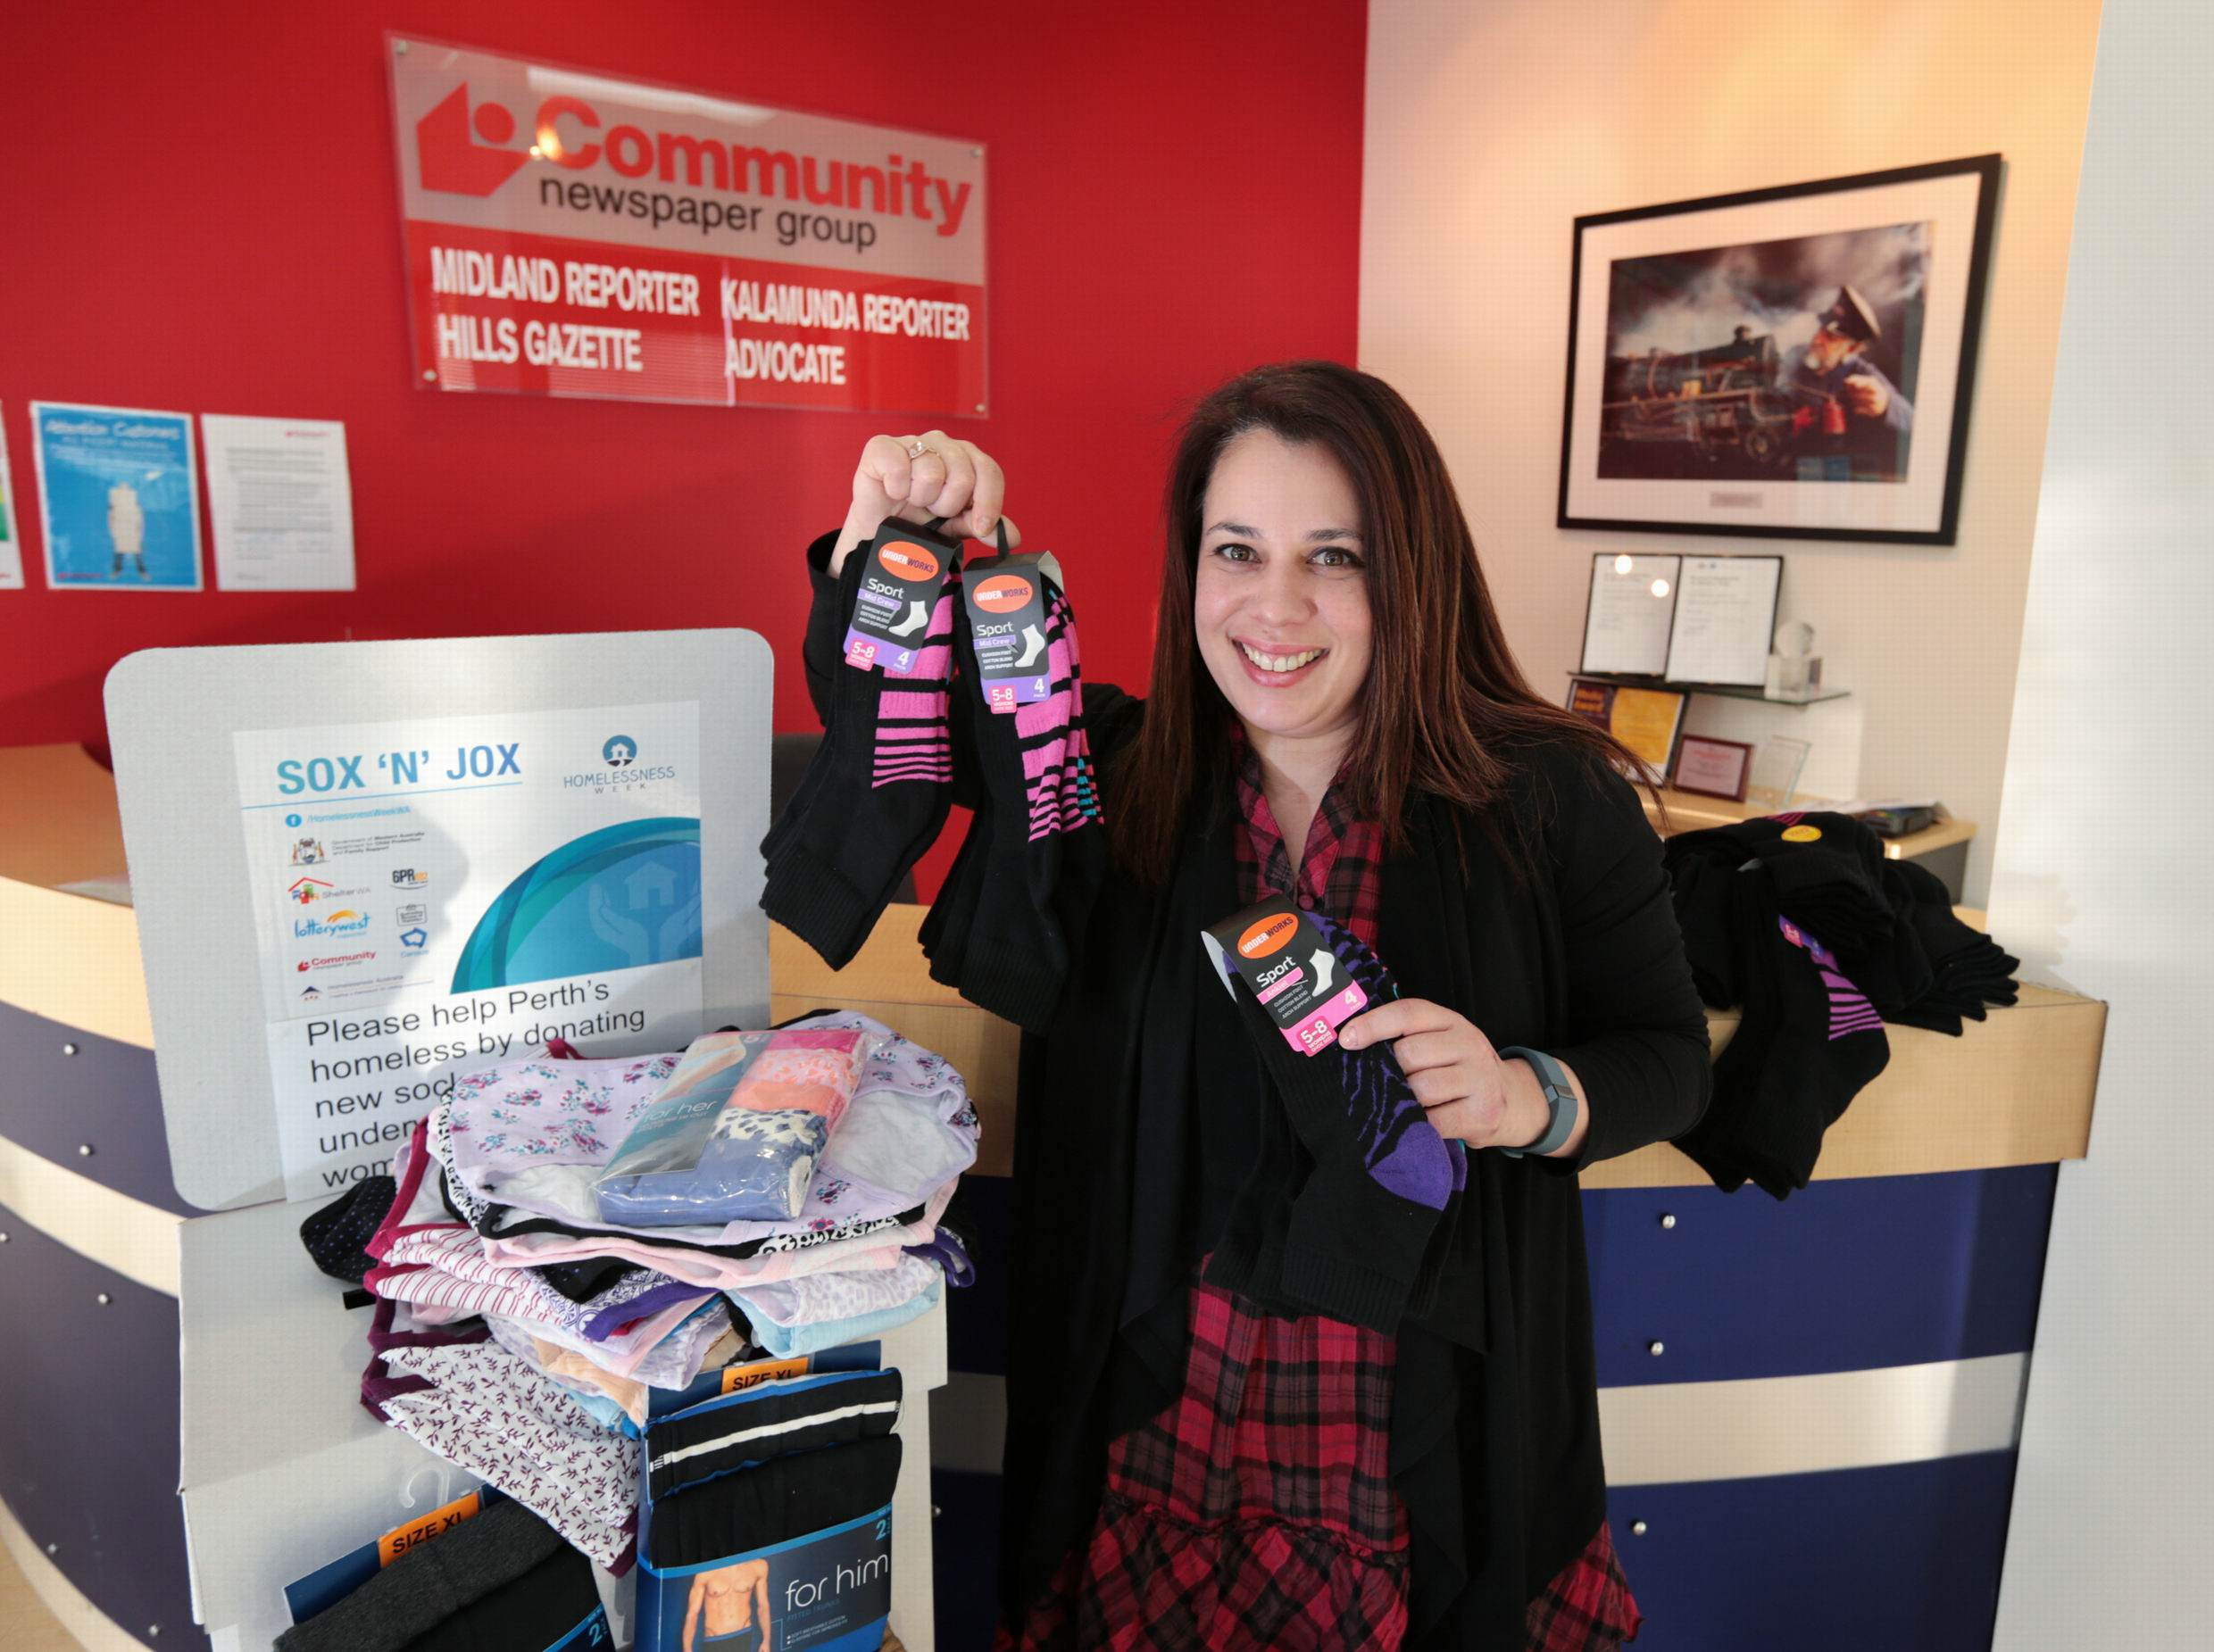 Midland office receptionist Vanessa Eastwell with the large Sox 'N' Jox donation at the Midland office.